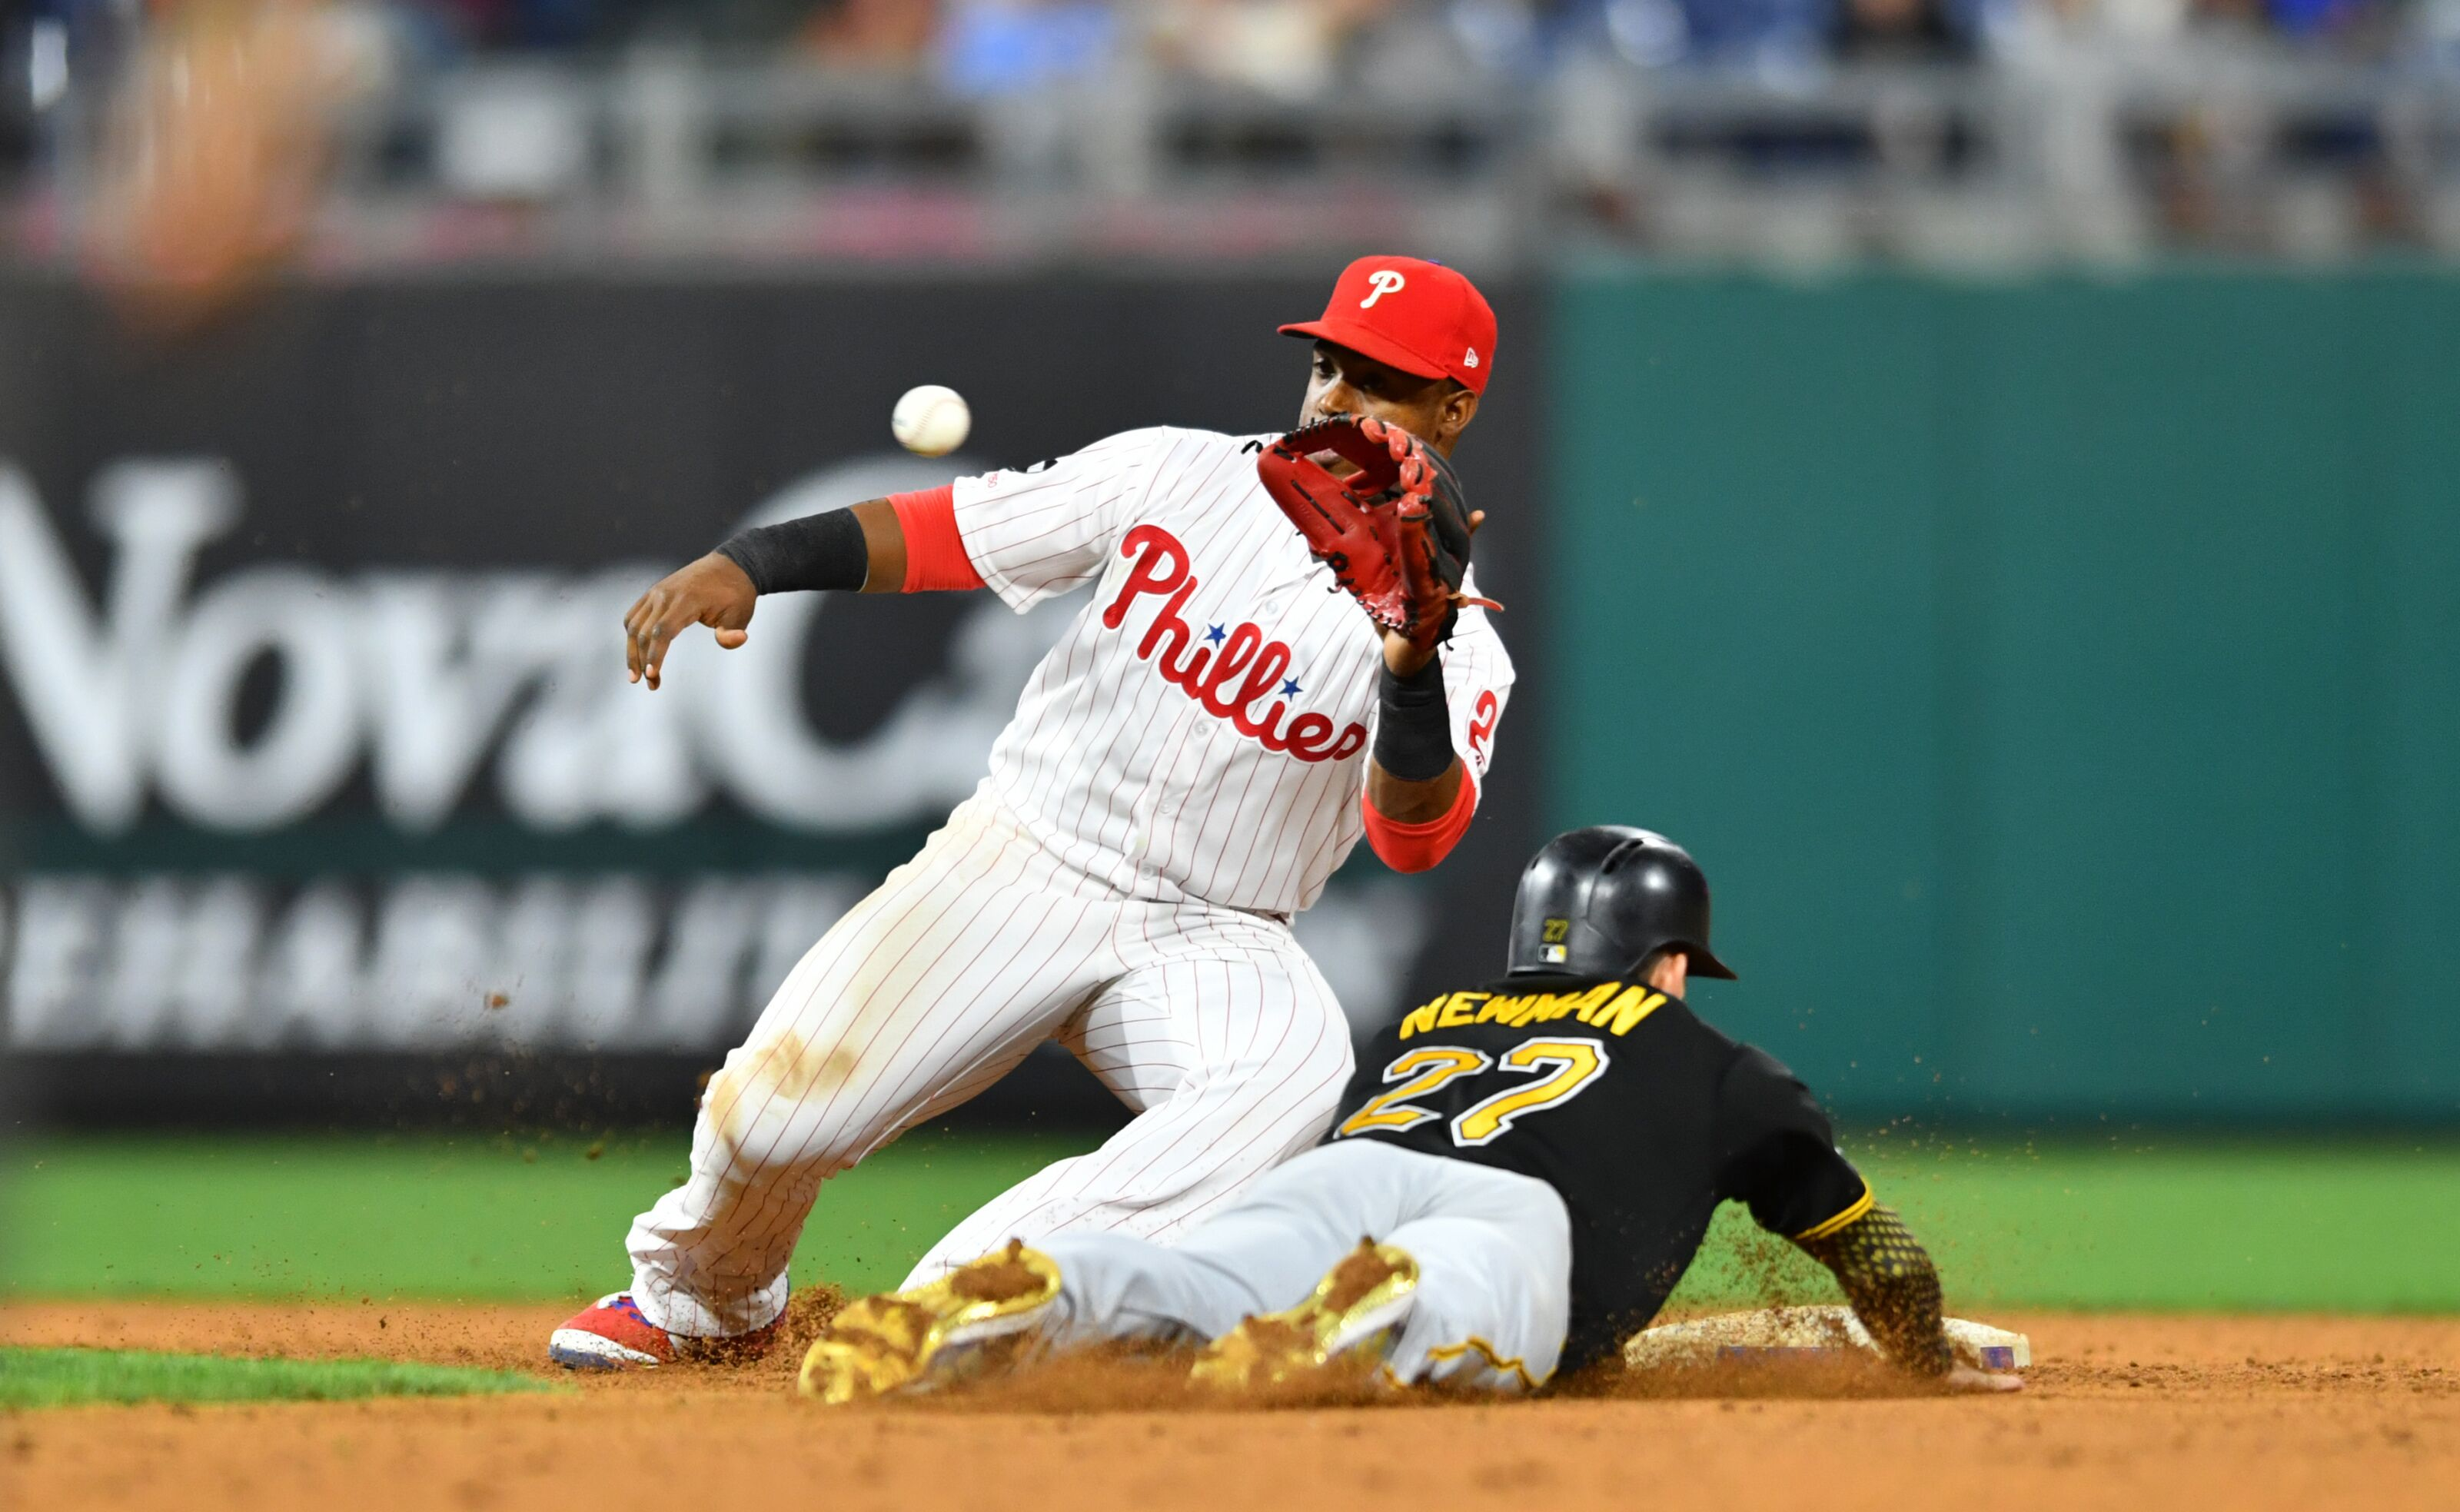 Phillies were able to right the ship with their defense